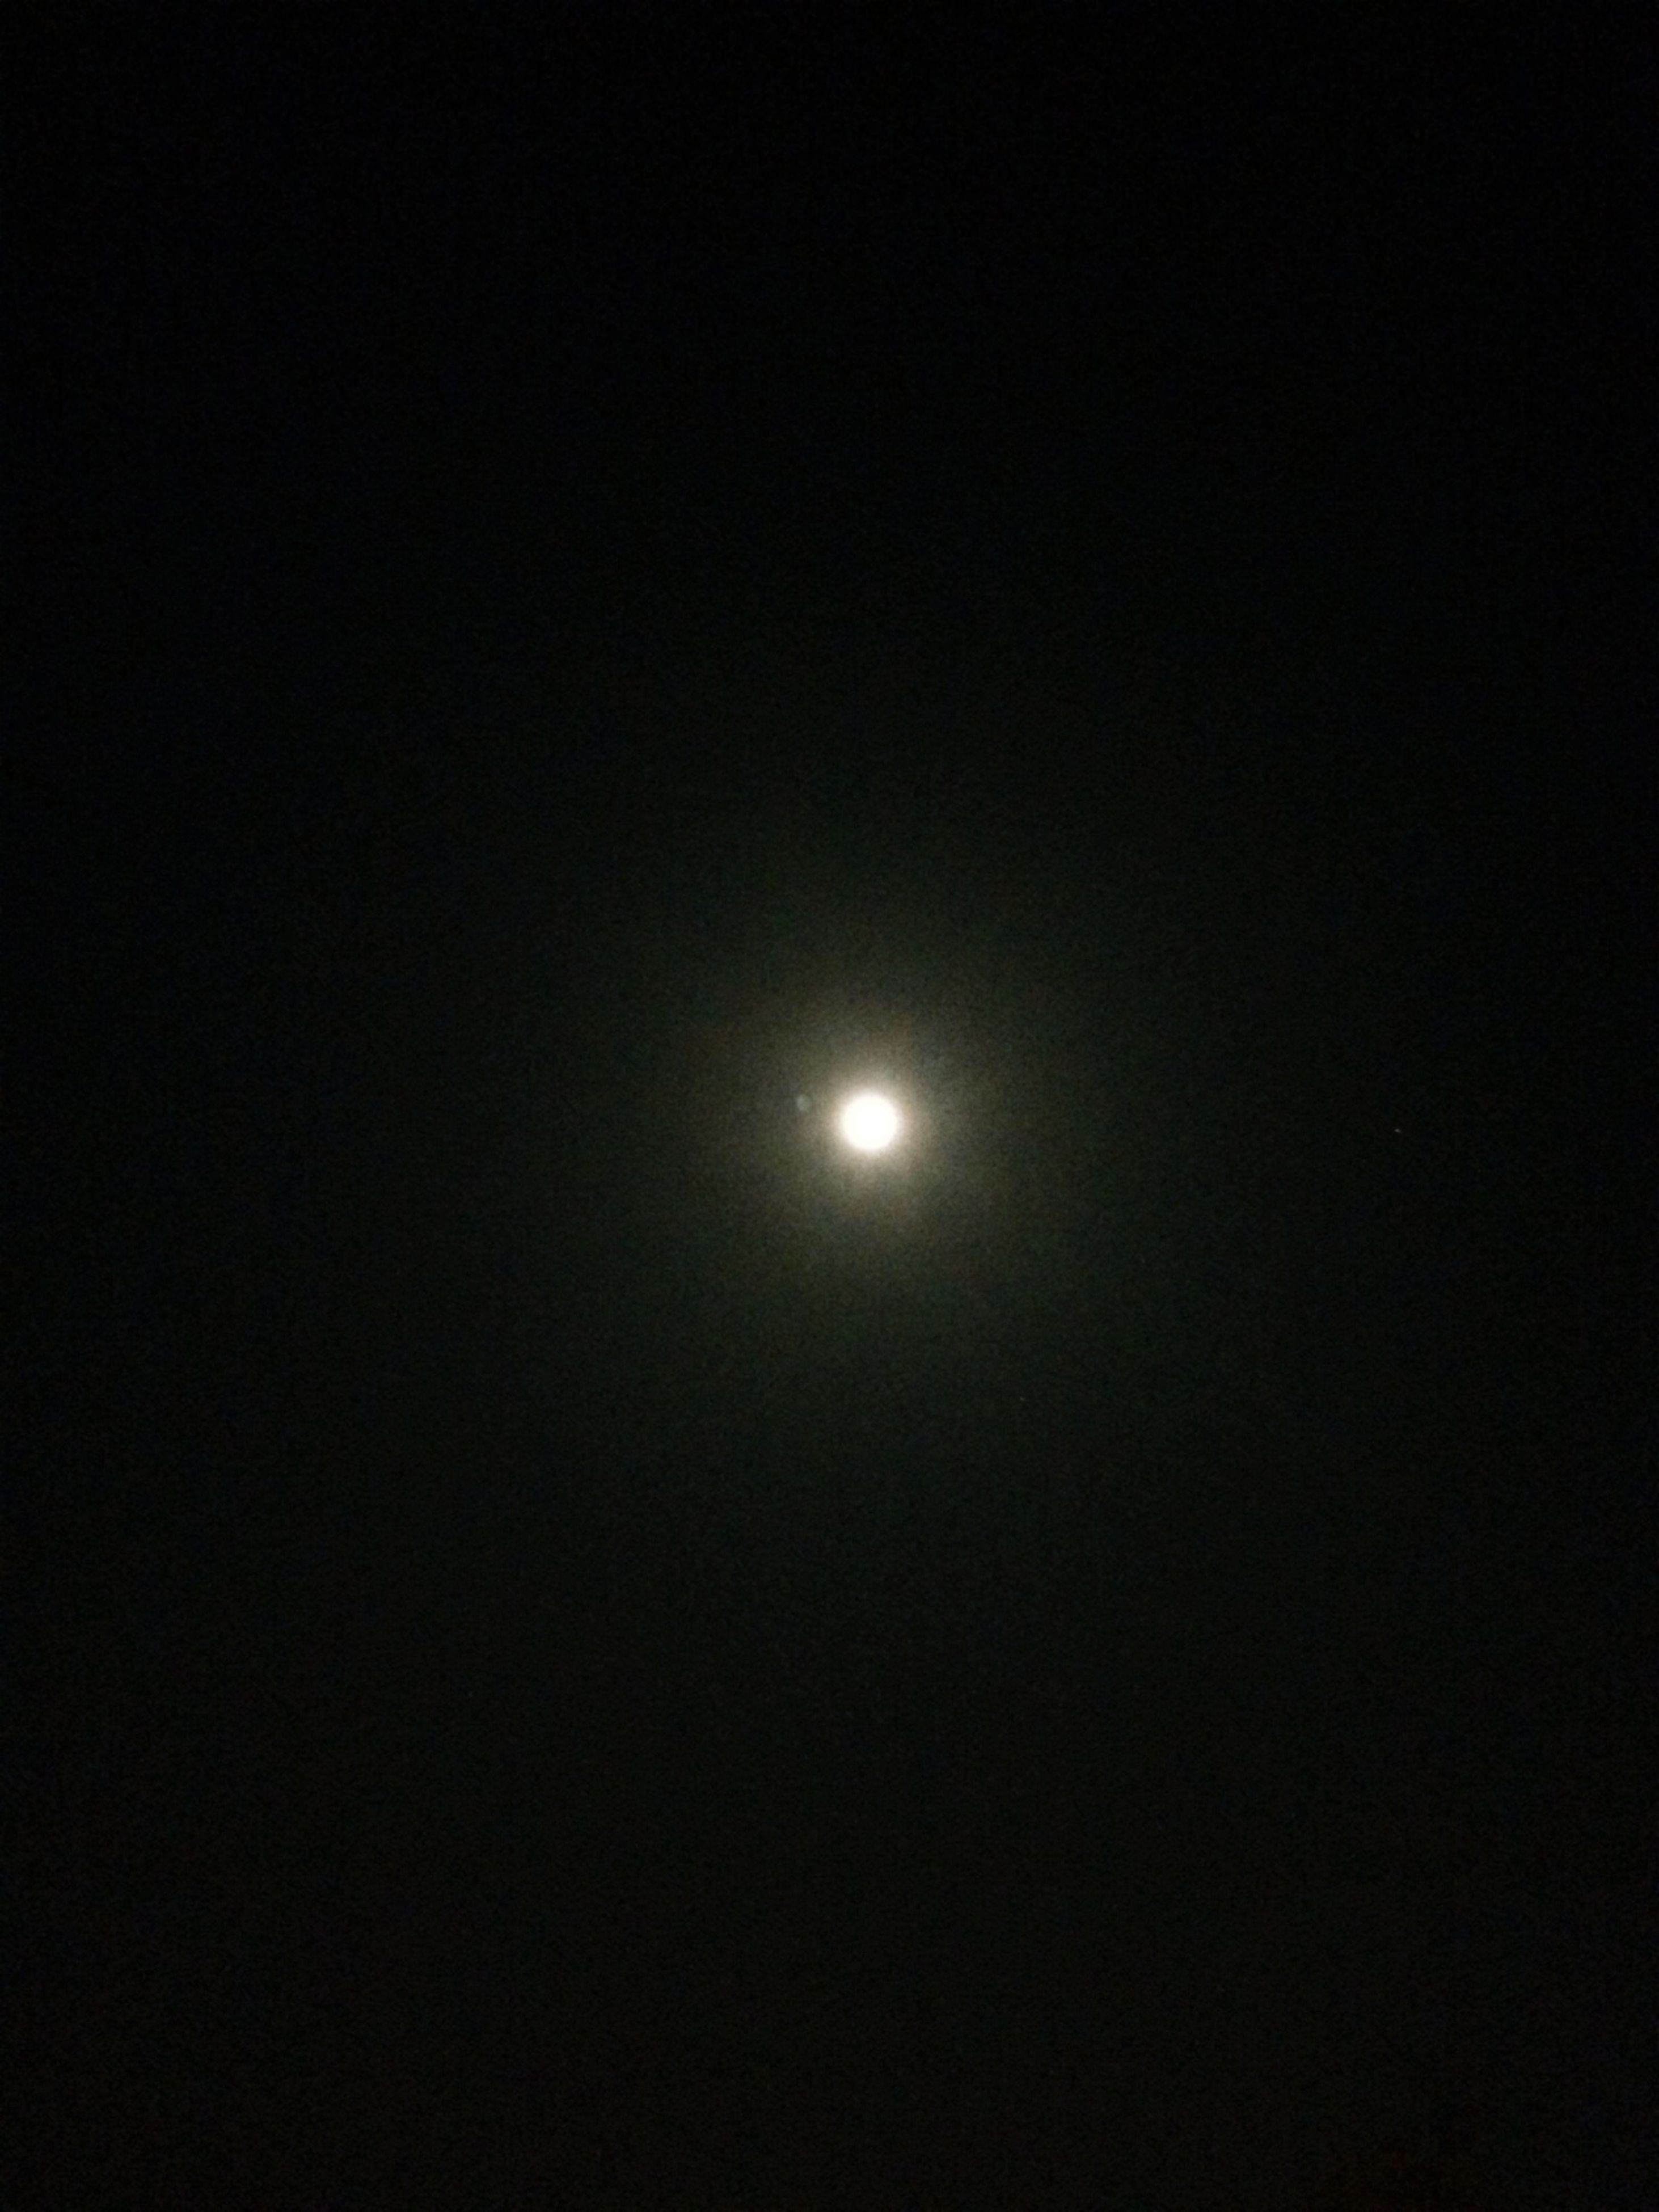 moon, night, low angle view, beauty in nature, full moon, astronomy, tranquility, copy space, scenics, tranquil scene, dark, nature, clear sky, sky, idyllic, moonlight, planetary moon, majestic, sky only, sun